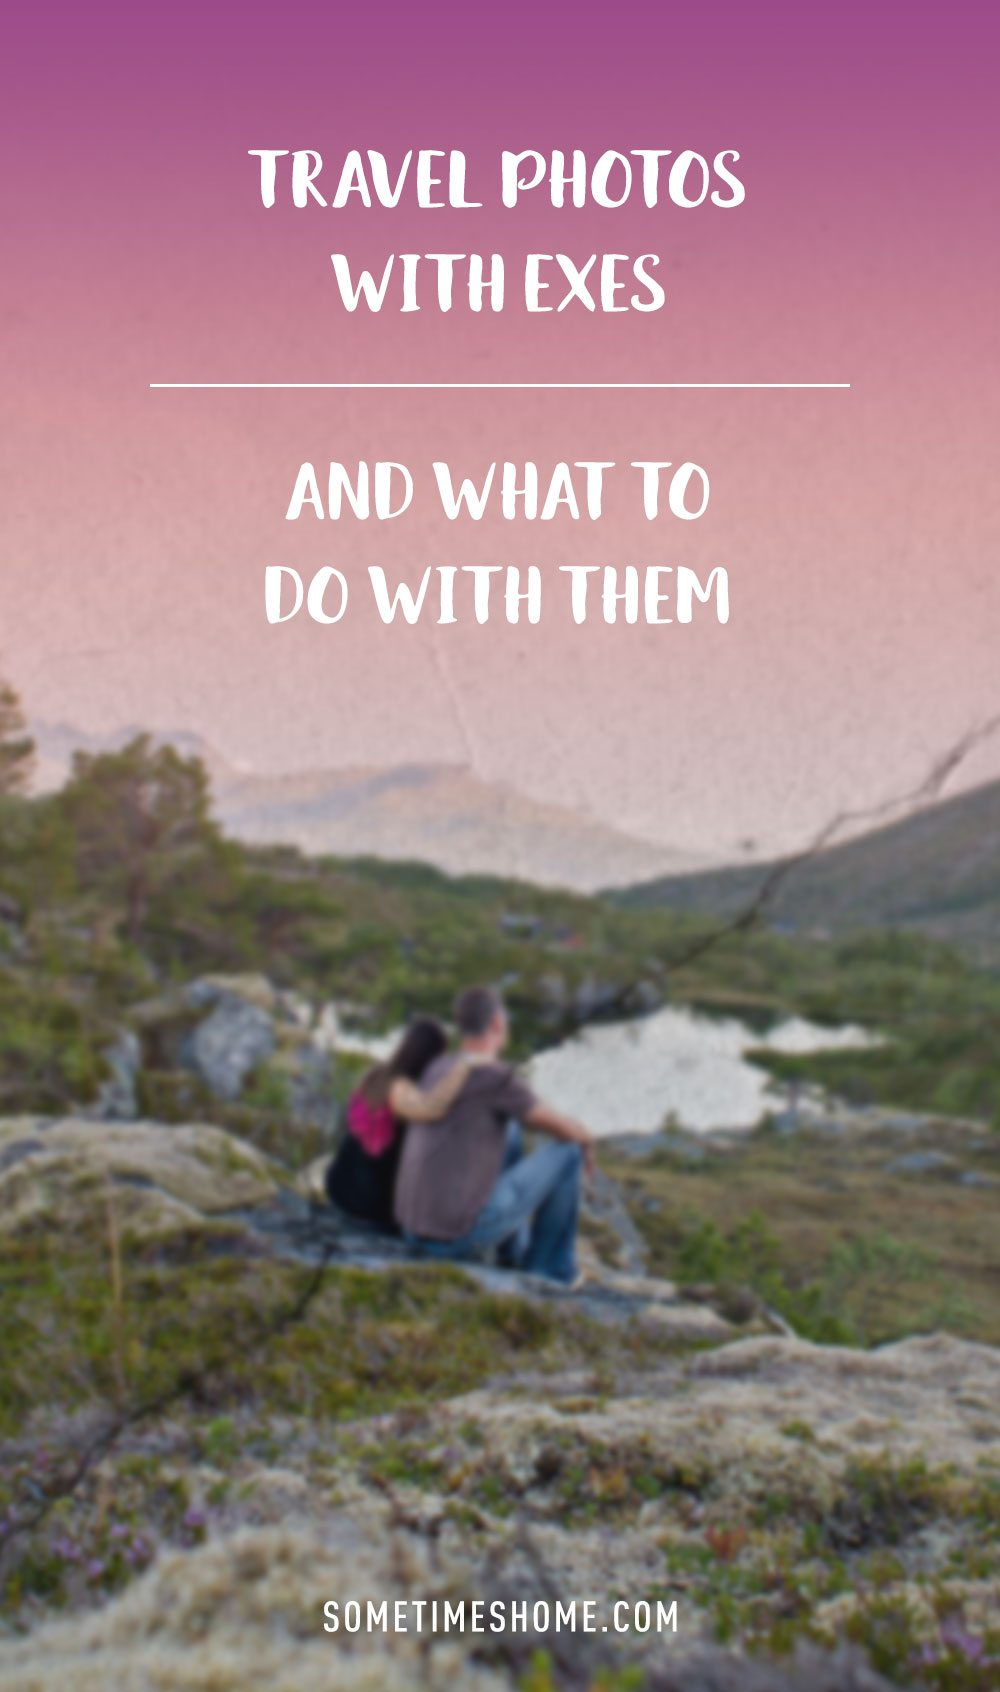 Travel Photos with Exes + What to Do With Them by Sometimes Home travel website.